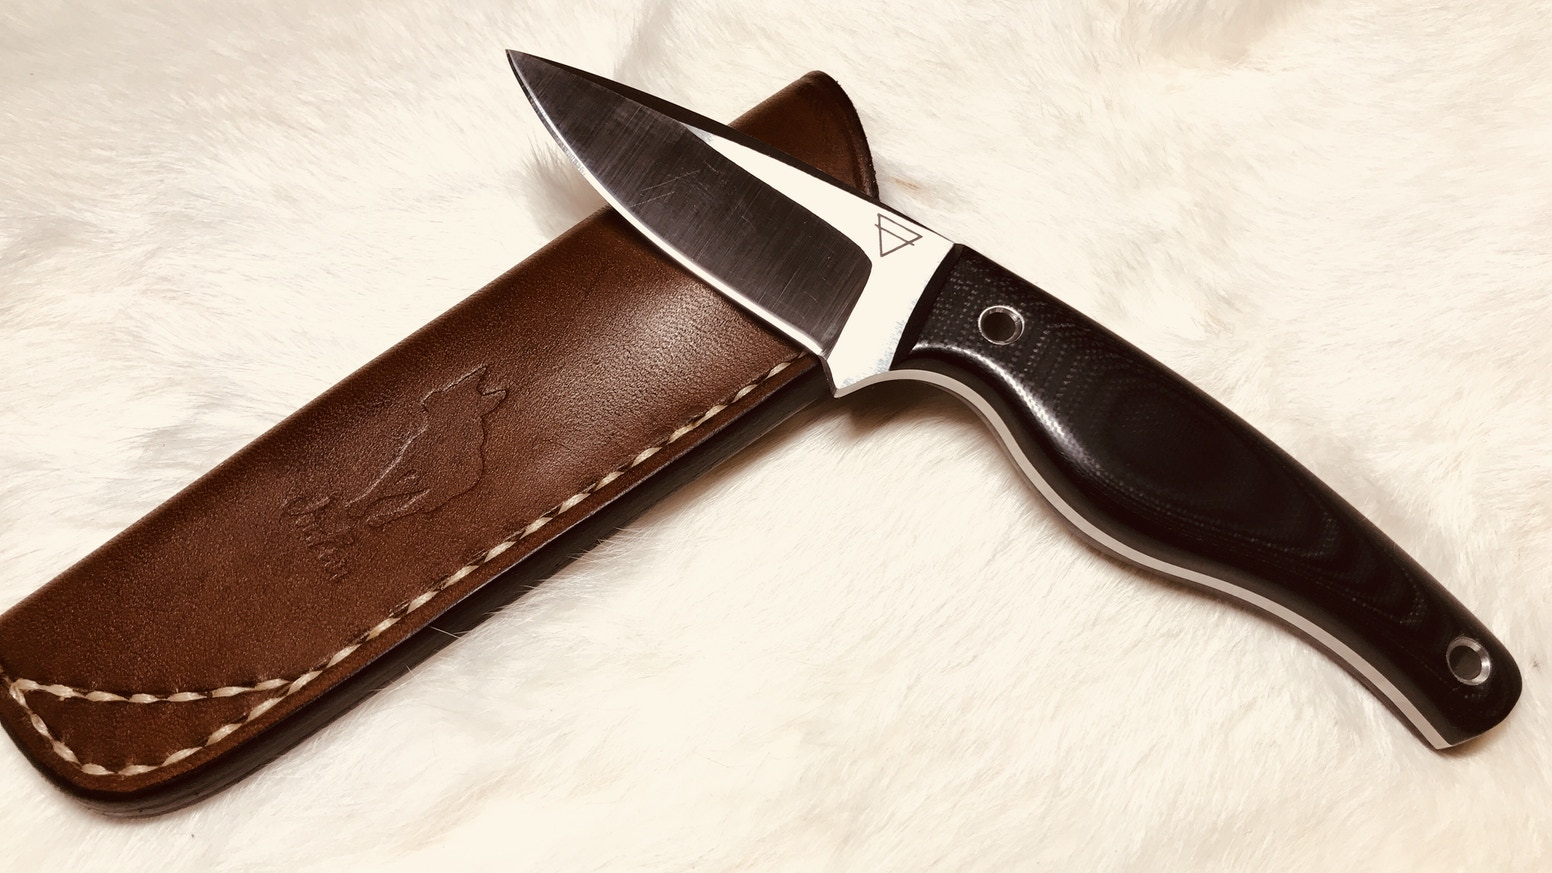 This is a knife made of one of the most extreme super steels available in knife making.